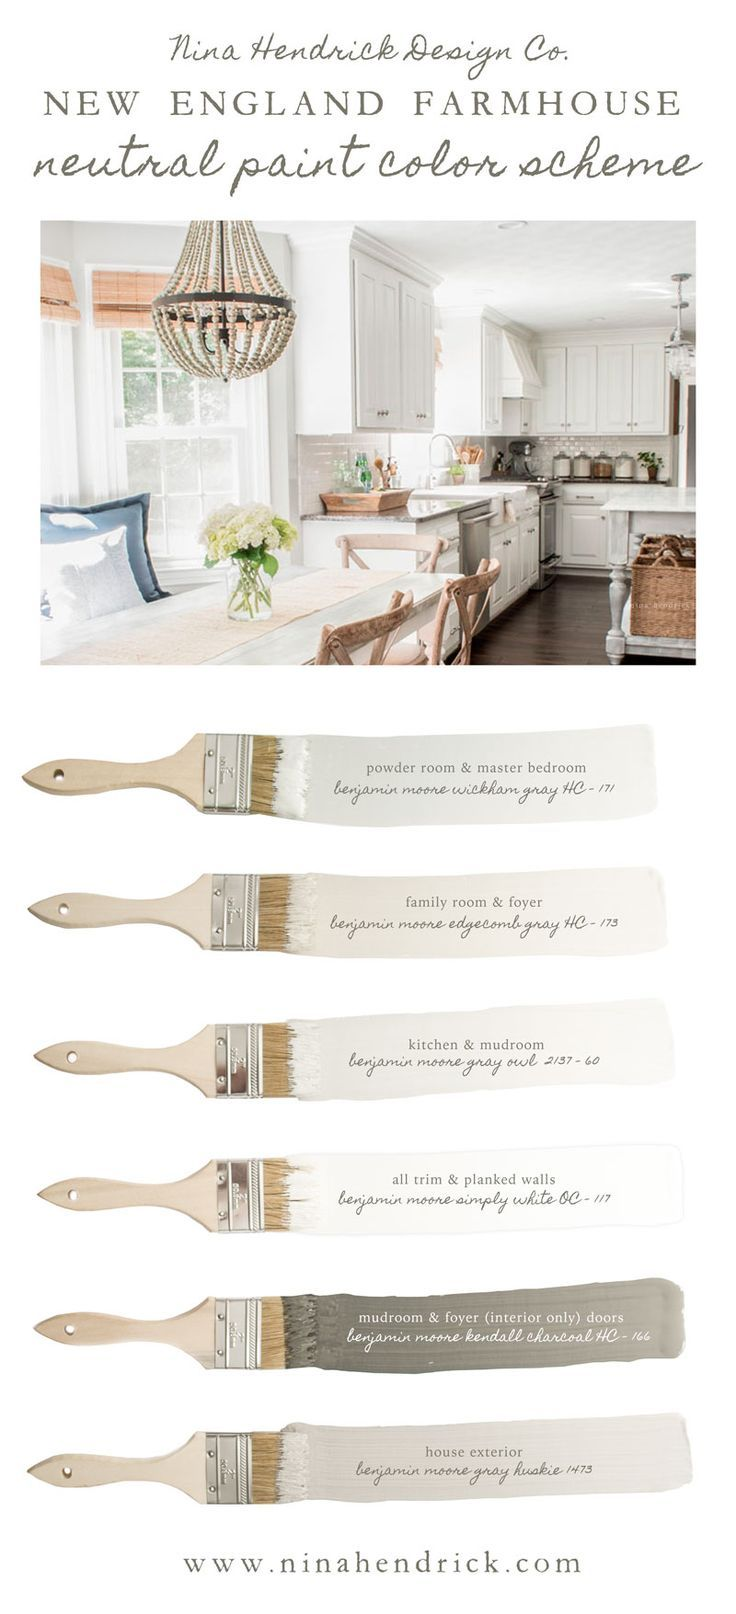 Nina Hendrick Design Cou0027s New England Farmhouse Neutral Paint Color Scheme  | A Neutral And Soothing Color Scheme For Your Entire Home Using A  Combination Of ...